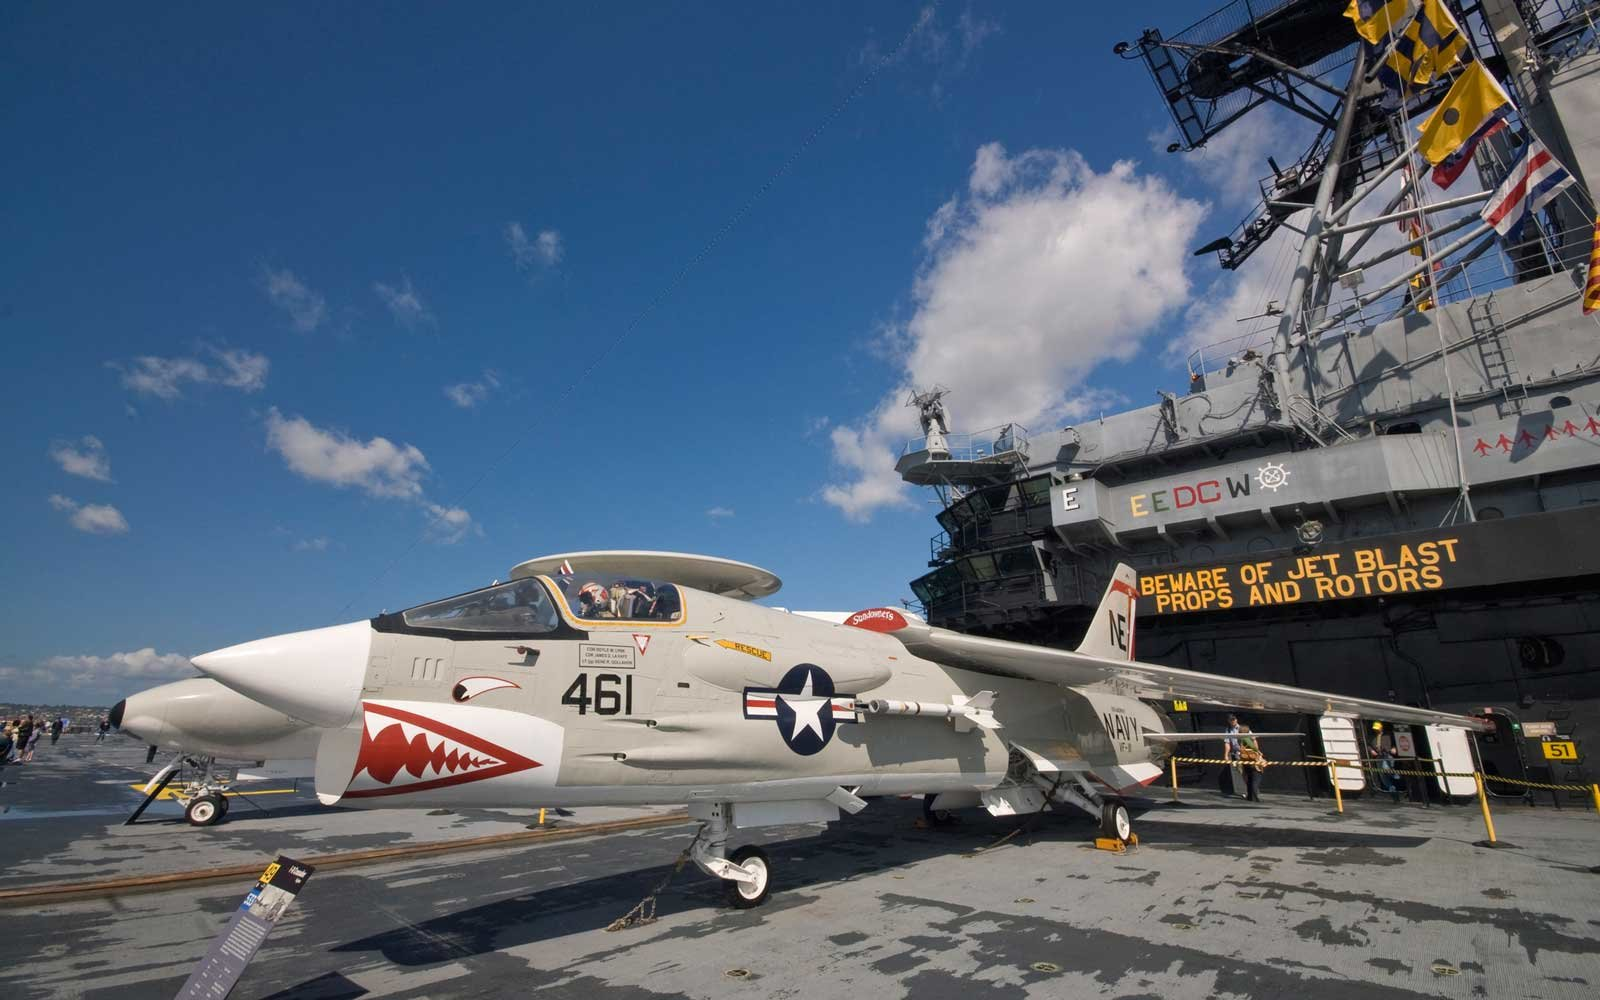 F-8 Crusader airplane on flight deck of USS Midway, aircraft carrier museum ship.